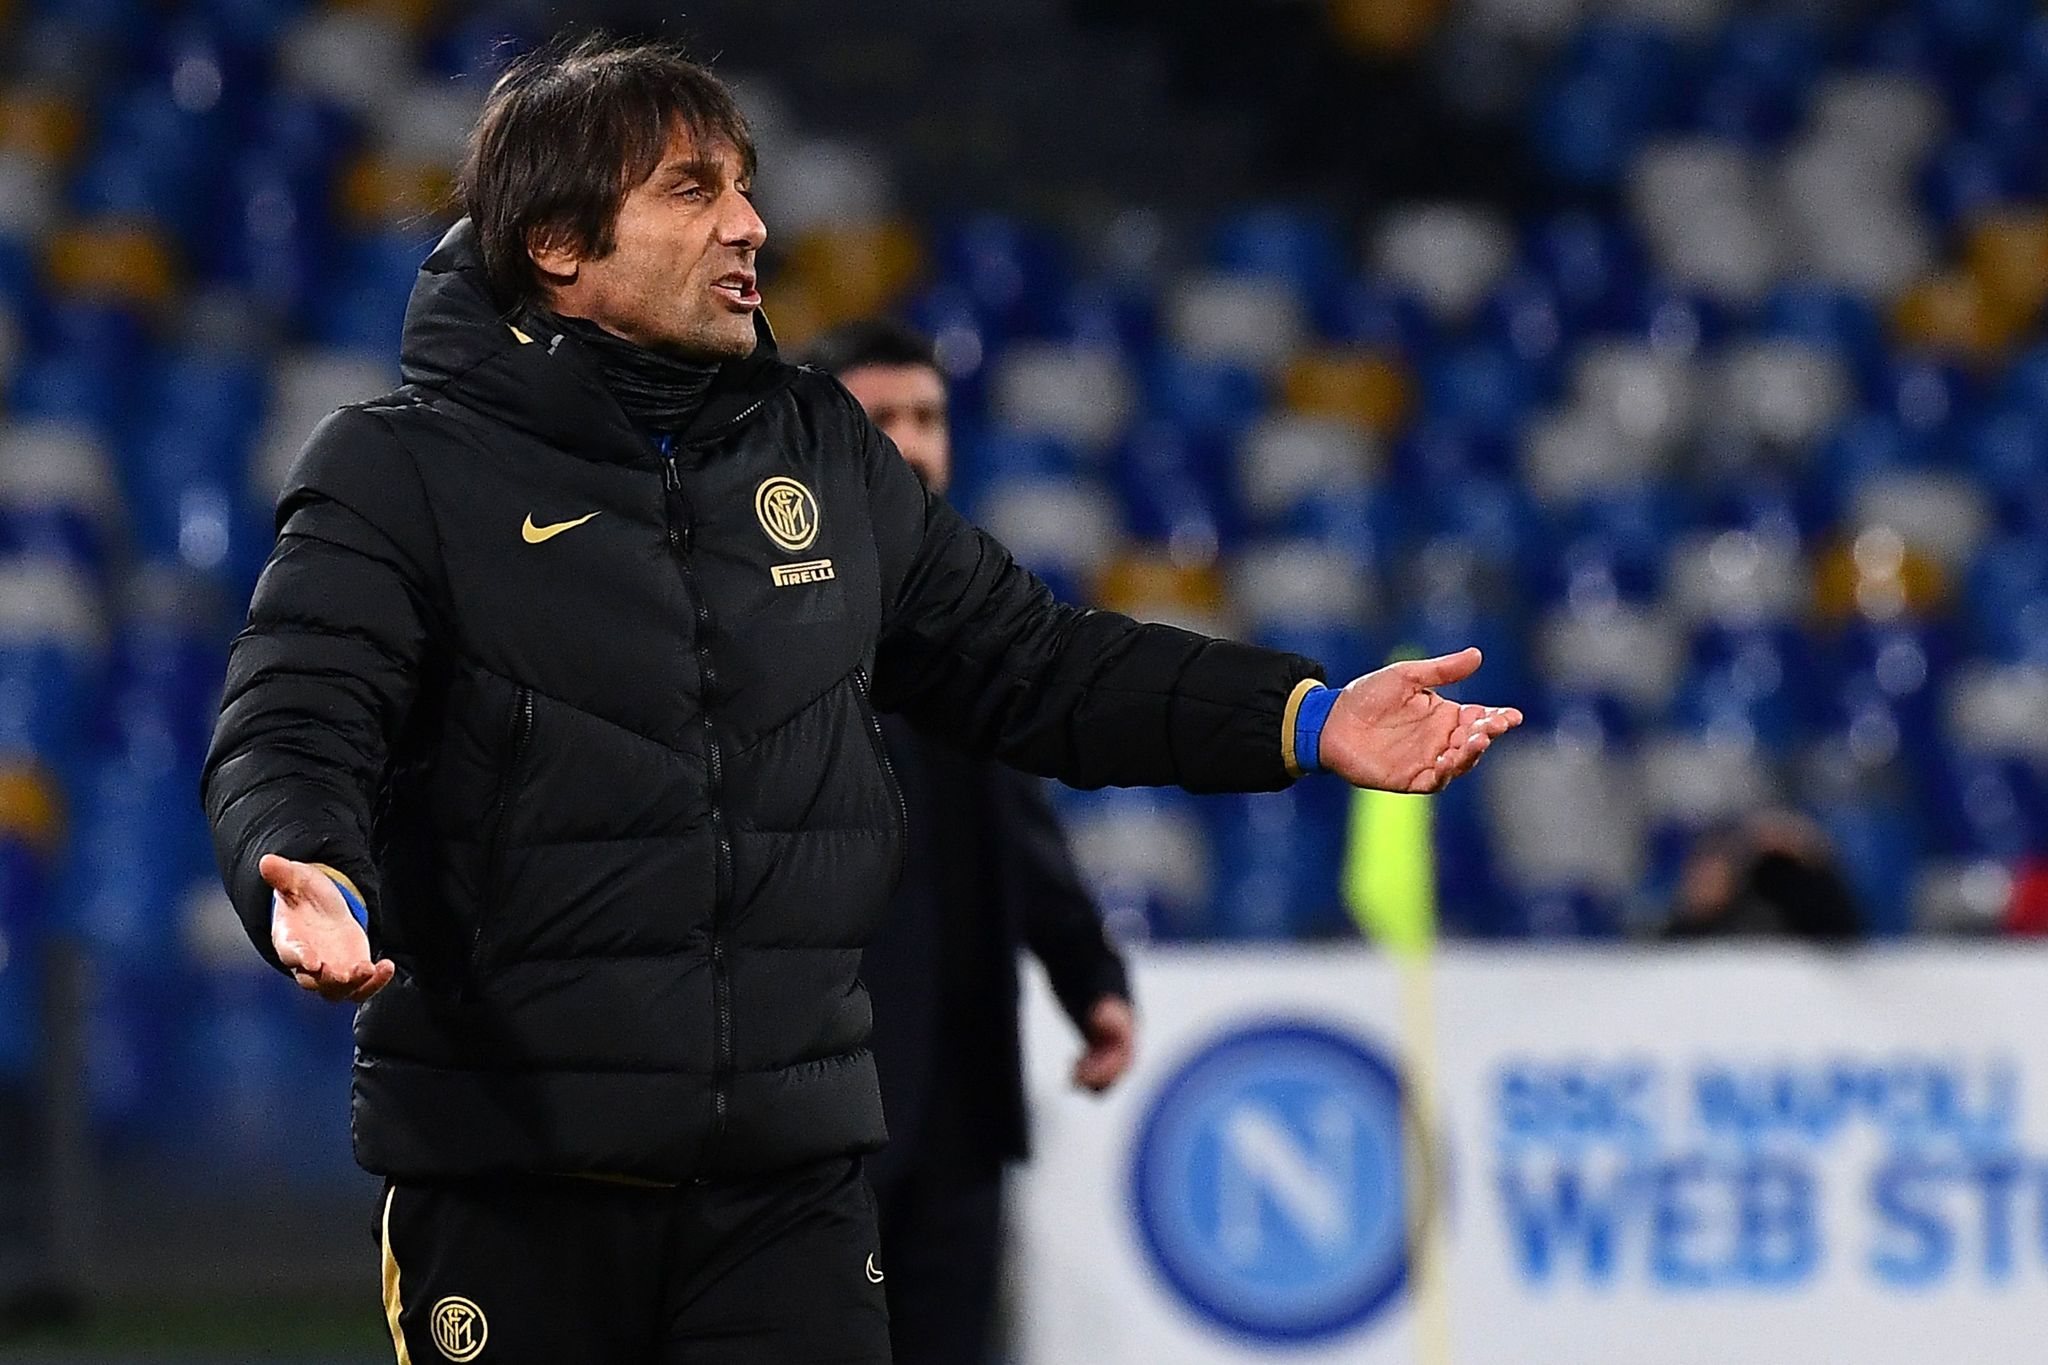 Inter Milans Italian head coach Antonio <HIT>Conte</HIT> reacts during the Italian Serie A football match Napoli vs Inter Milan on January 6, 2020 at the San Paolo stadium in Naples. (Photo by Tiziana FABI / AFP)